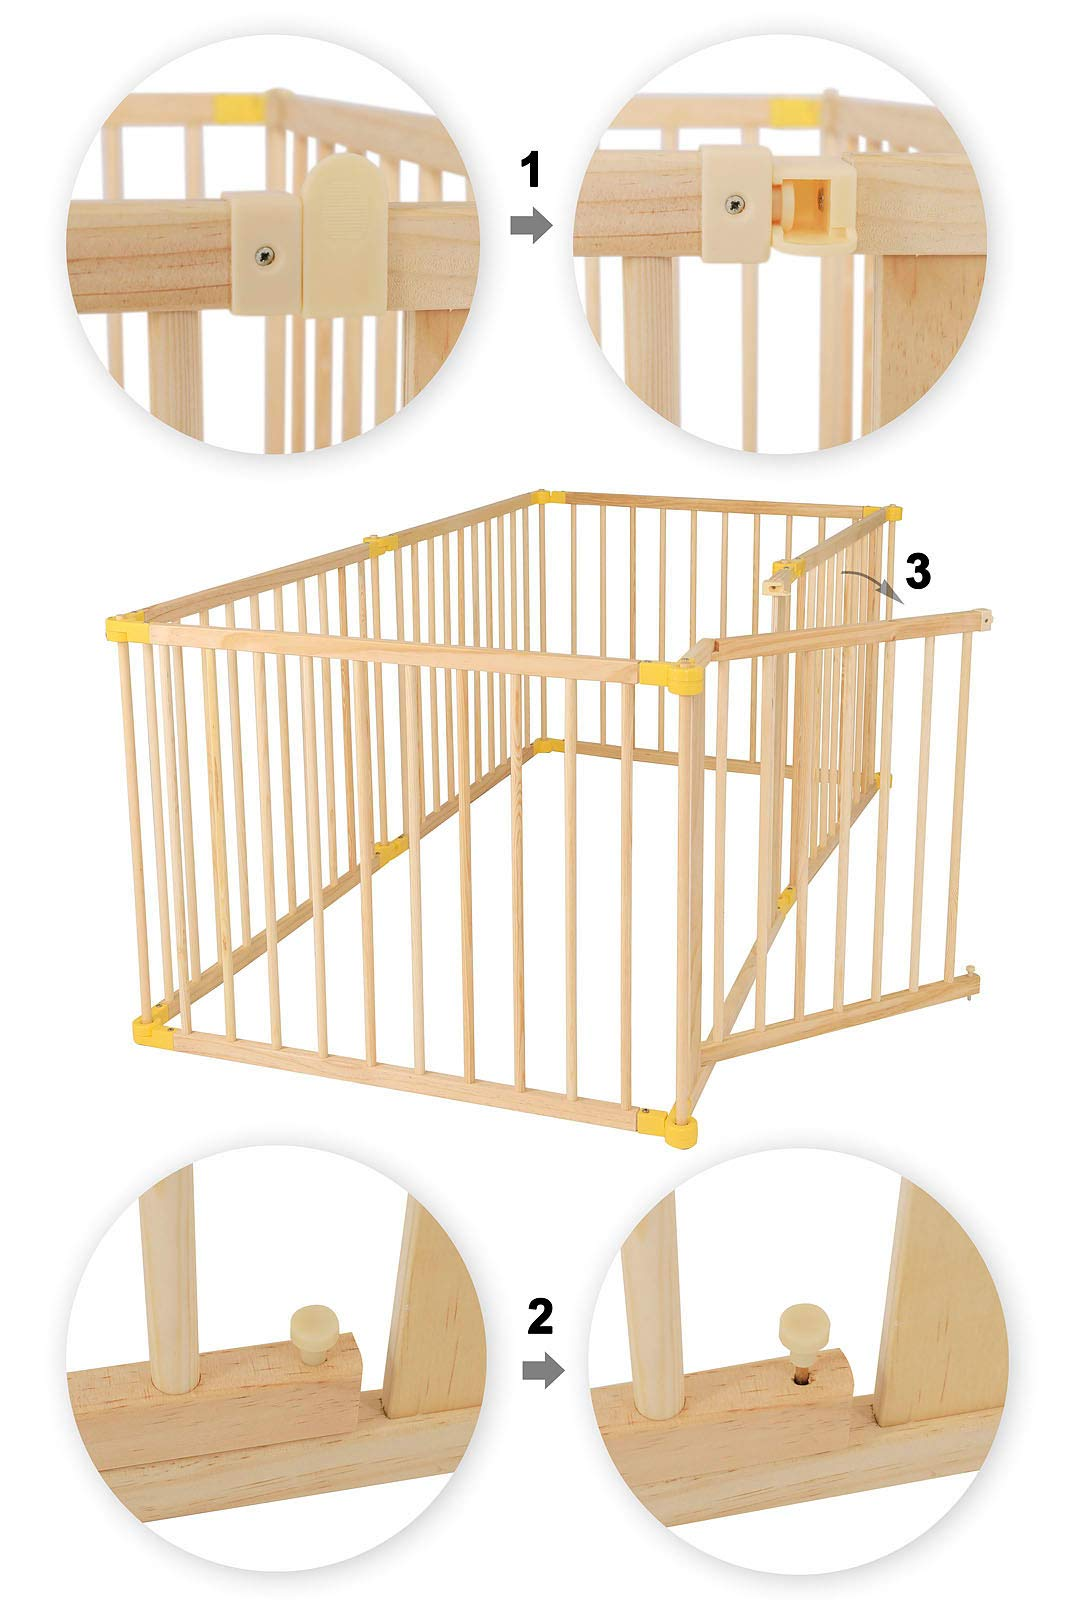 dibea DP00586 Baby Child Playpen, Wood, 270° Foldable incl. Door, 6 Panels Each 90x68cm dibea Wooden playpen with door, height 68 cm, 6 elements (including 1 door) each 90 x 68 cm (L, H). Distance between the single bars about 7, 5 cm 270 ° foldable, lockable form, flexibly usable as a playpen, protective grid, room divider or stair guard Rubber coating under the feet, so that the grid can not be moved by the baby 2